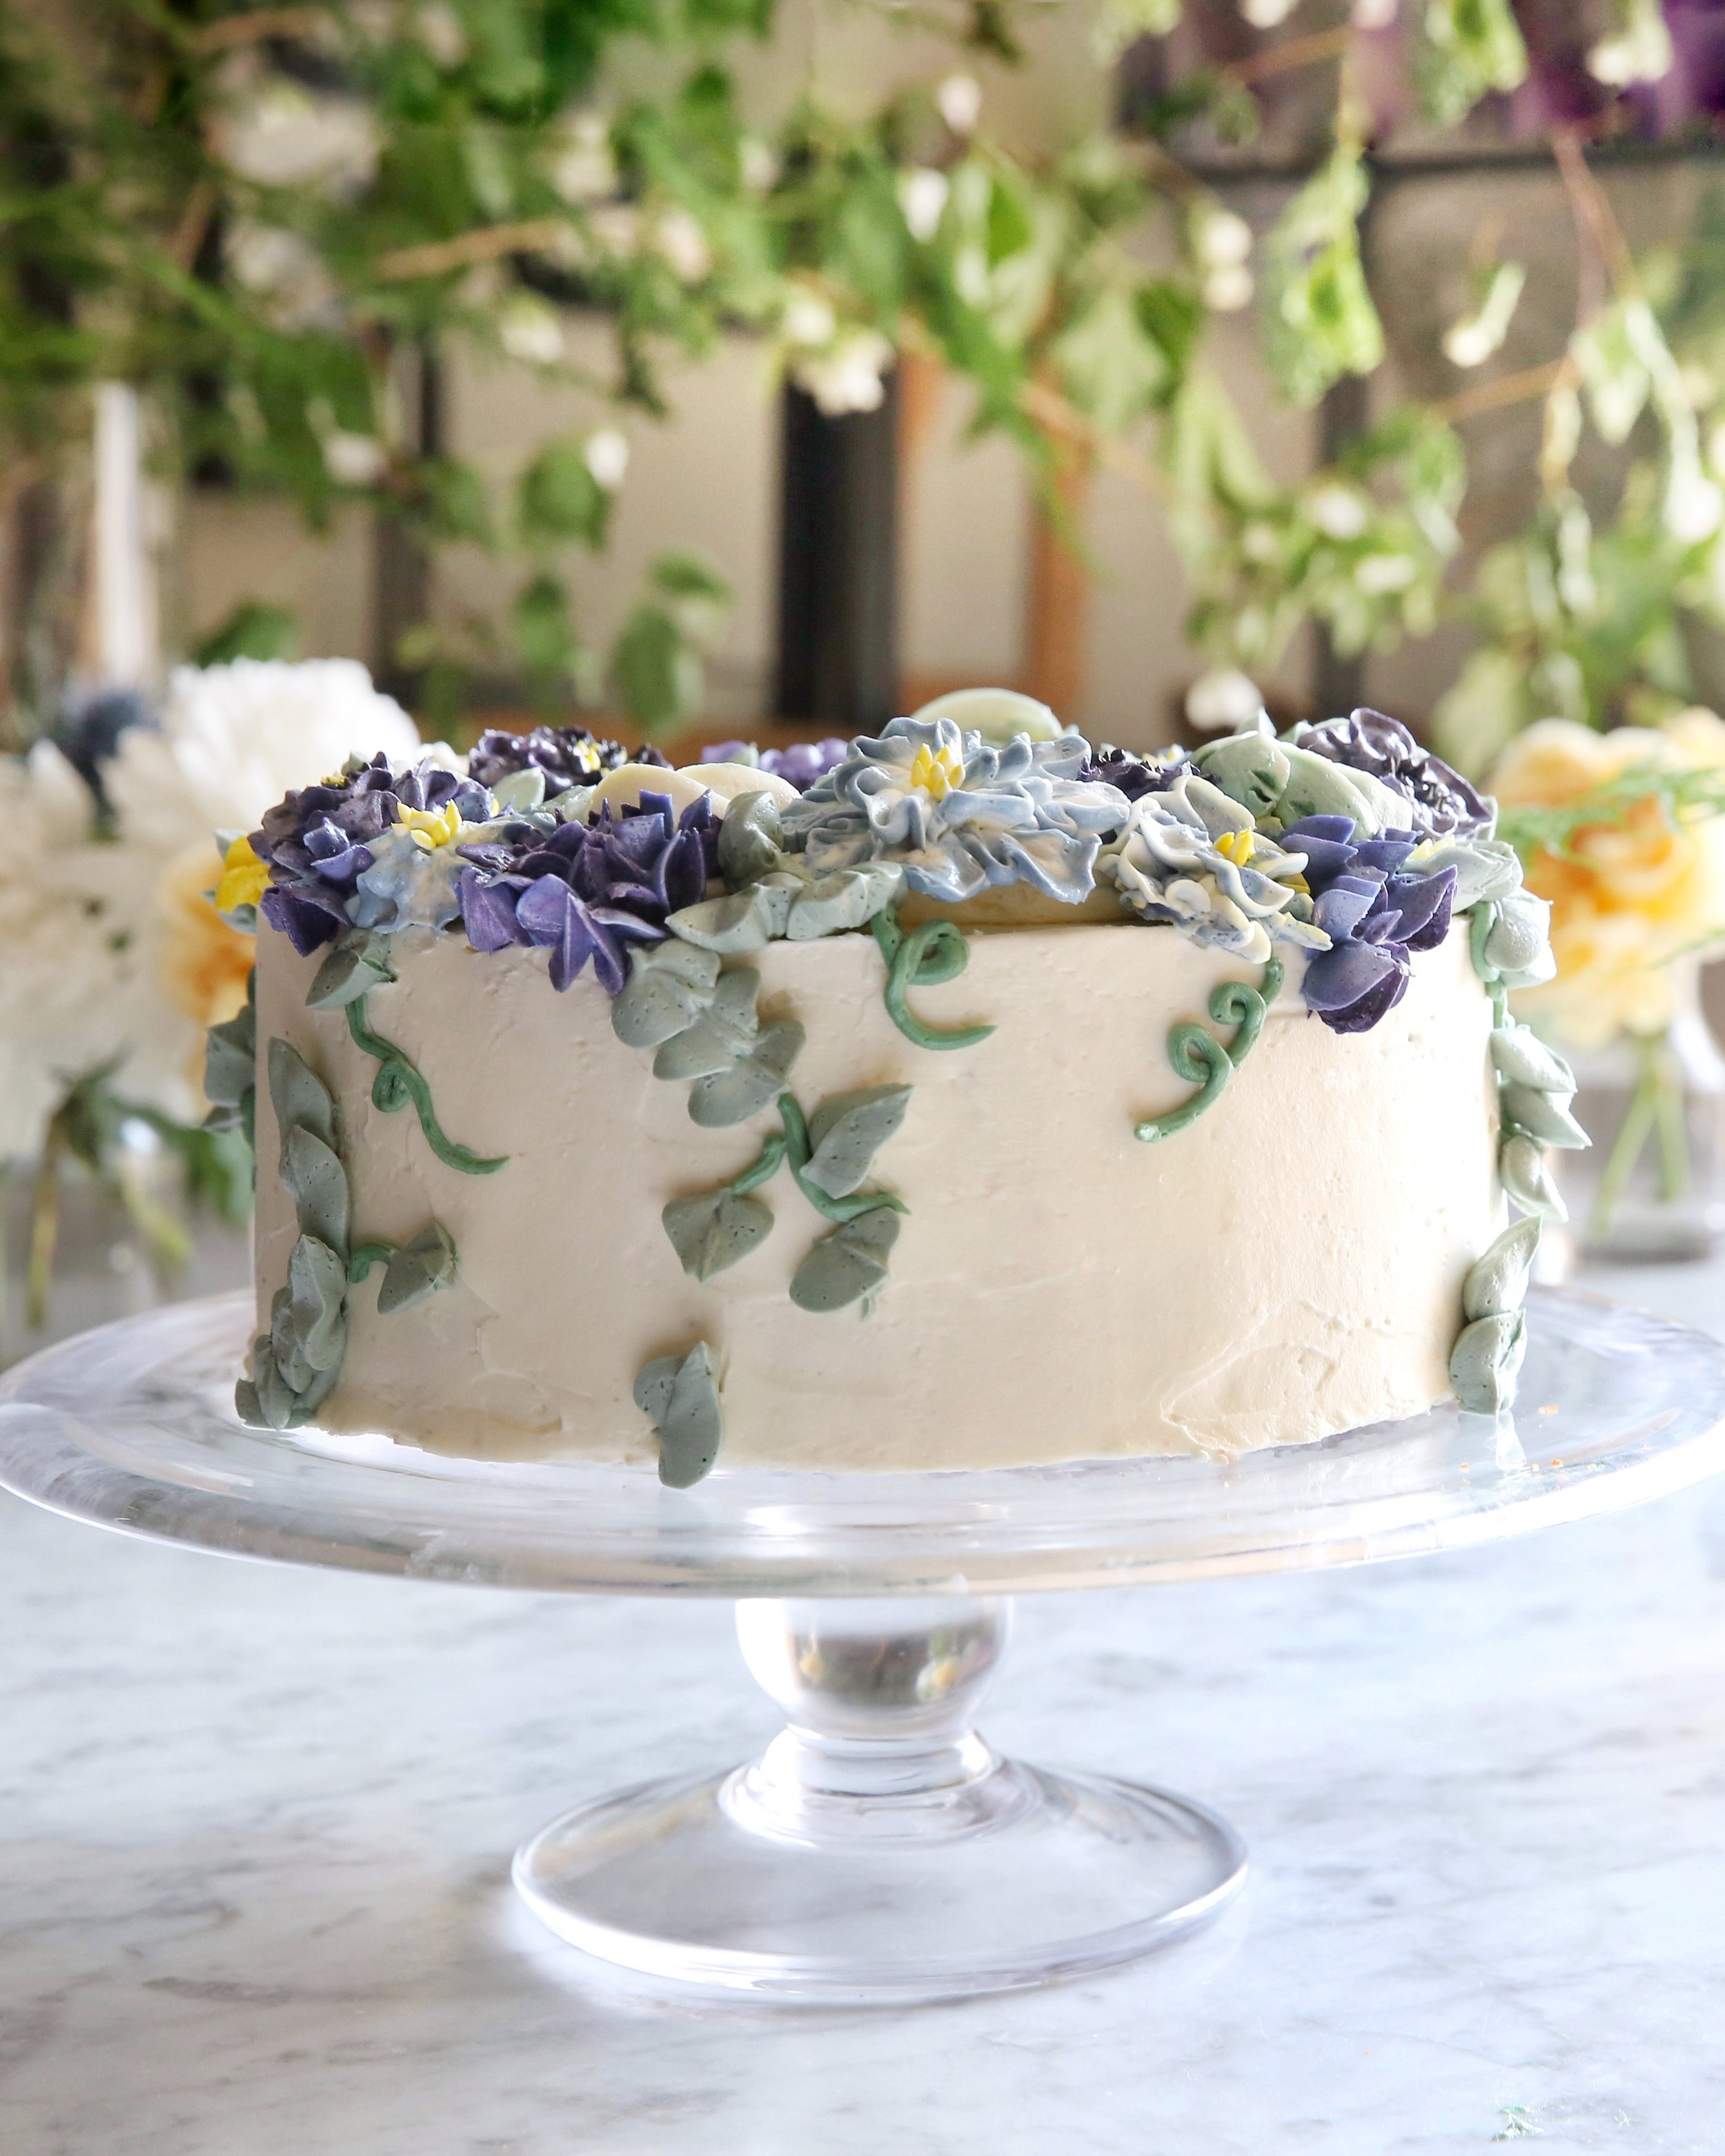 Judy Kim, Bridal Shower Cake, Cake Decorating Class, Food Stylist